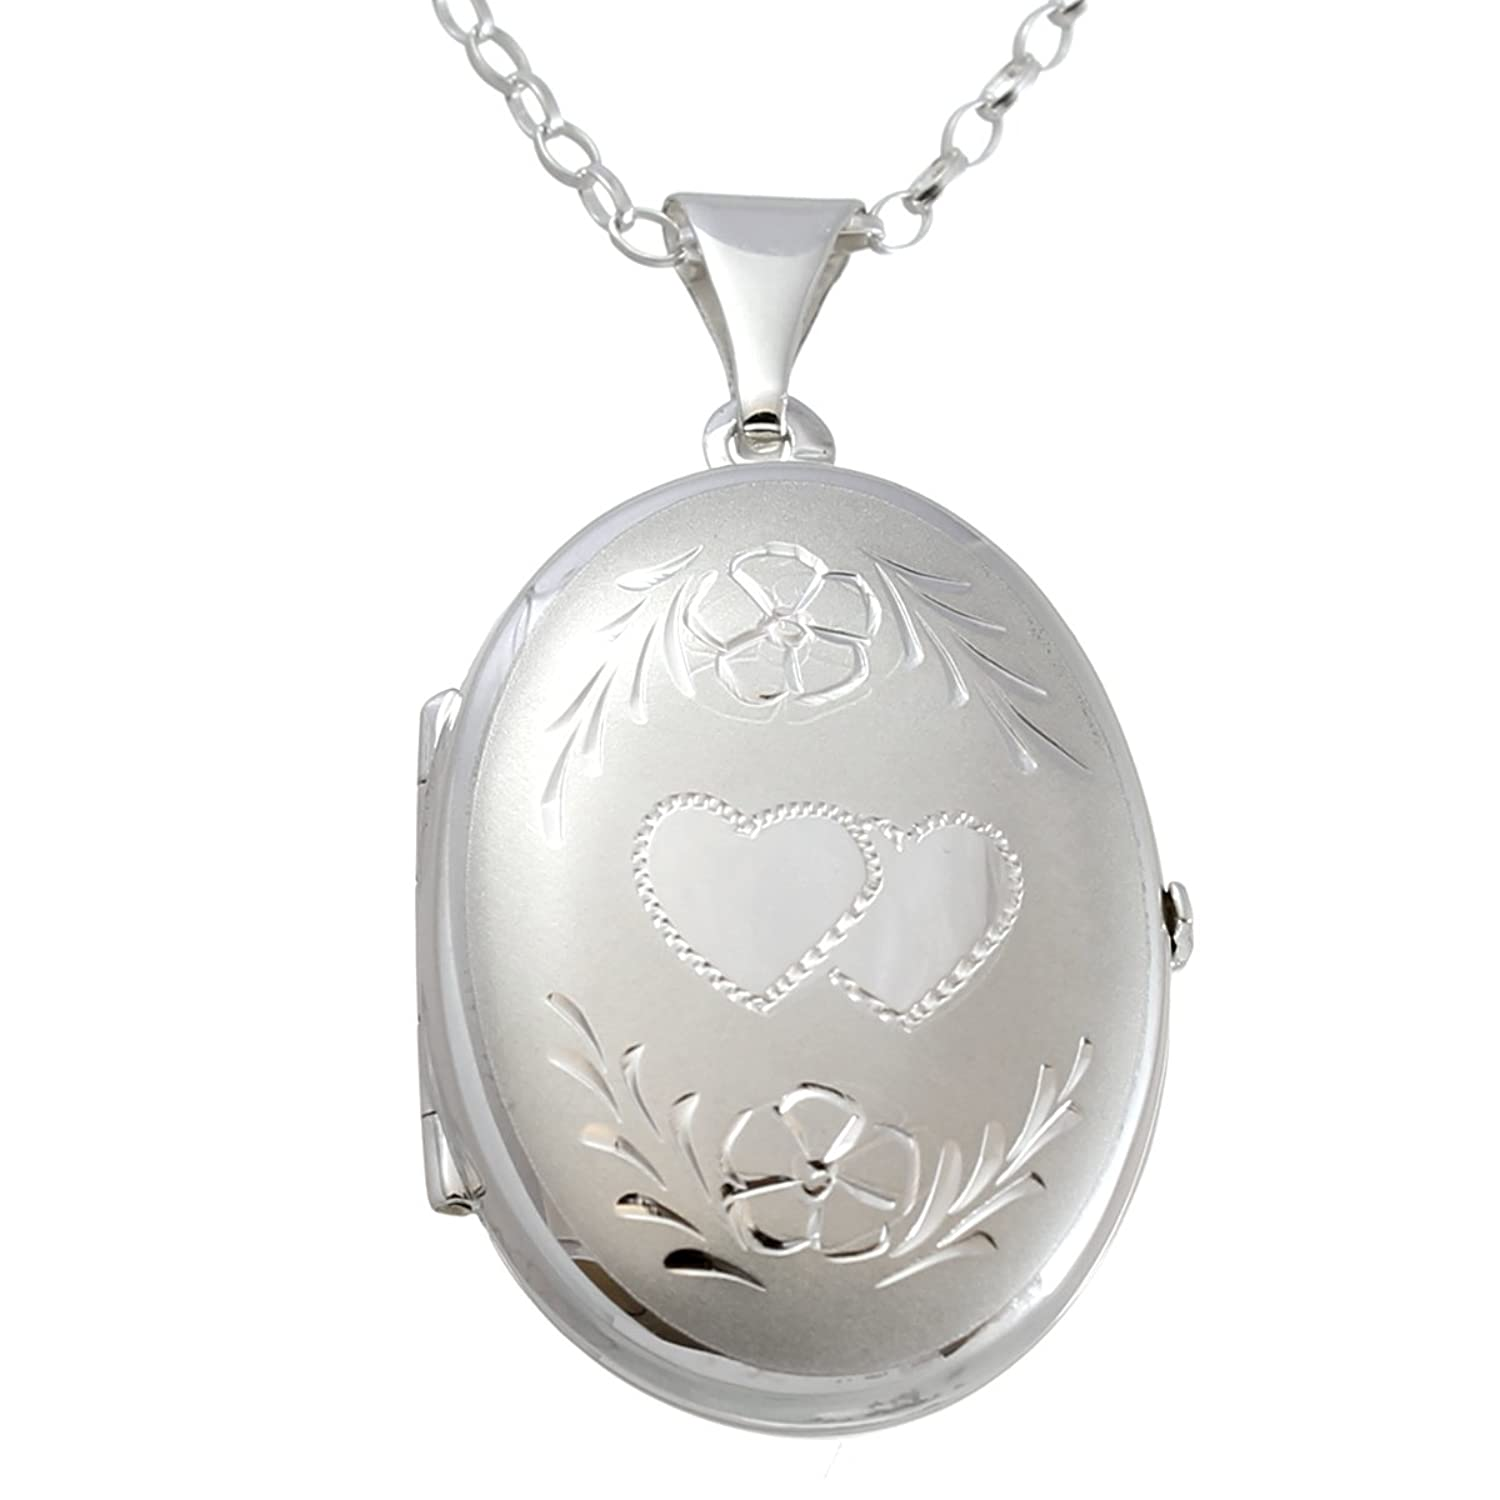 Sterling silver oval family locket pendant with 18 sterling silver sterling silver oval family locket pendant with 18 sterling silver chain space for 4 photographs jewellery gift box included amazon jewellery aloadofball Gallery